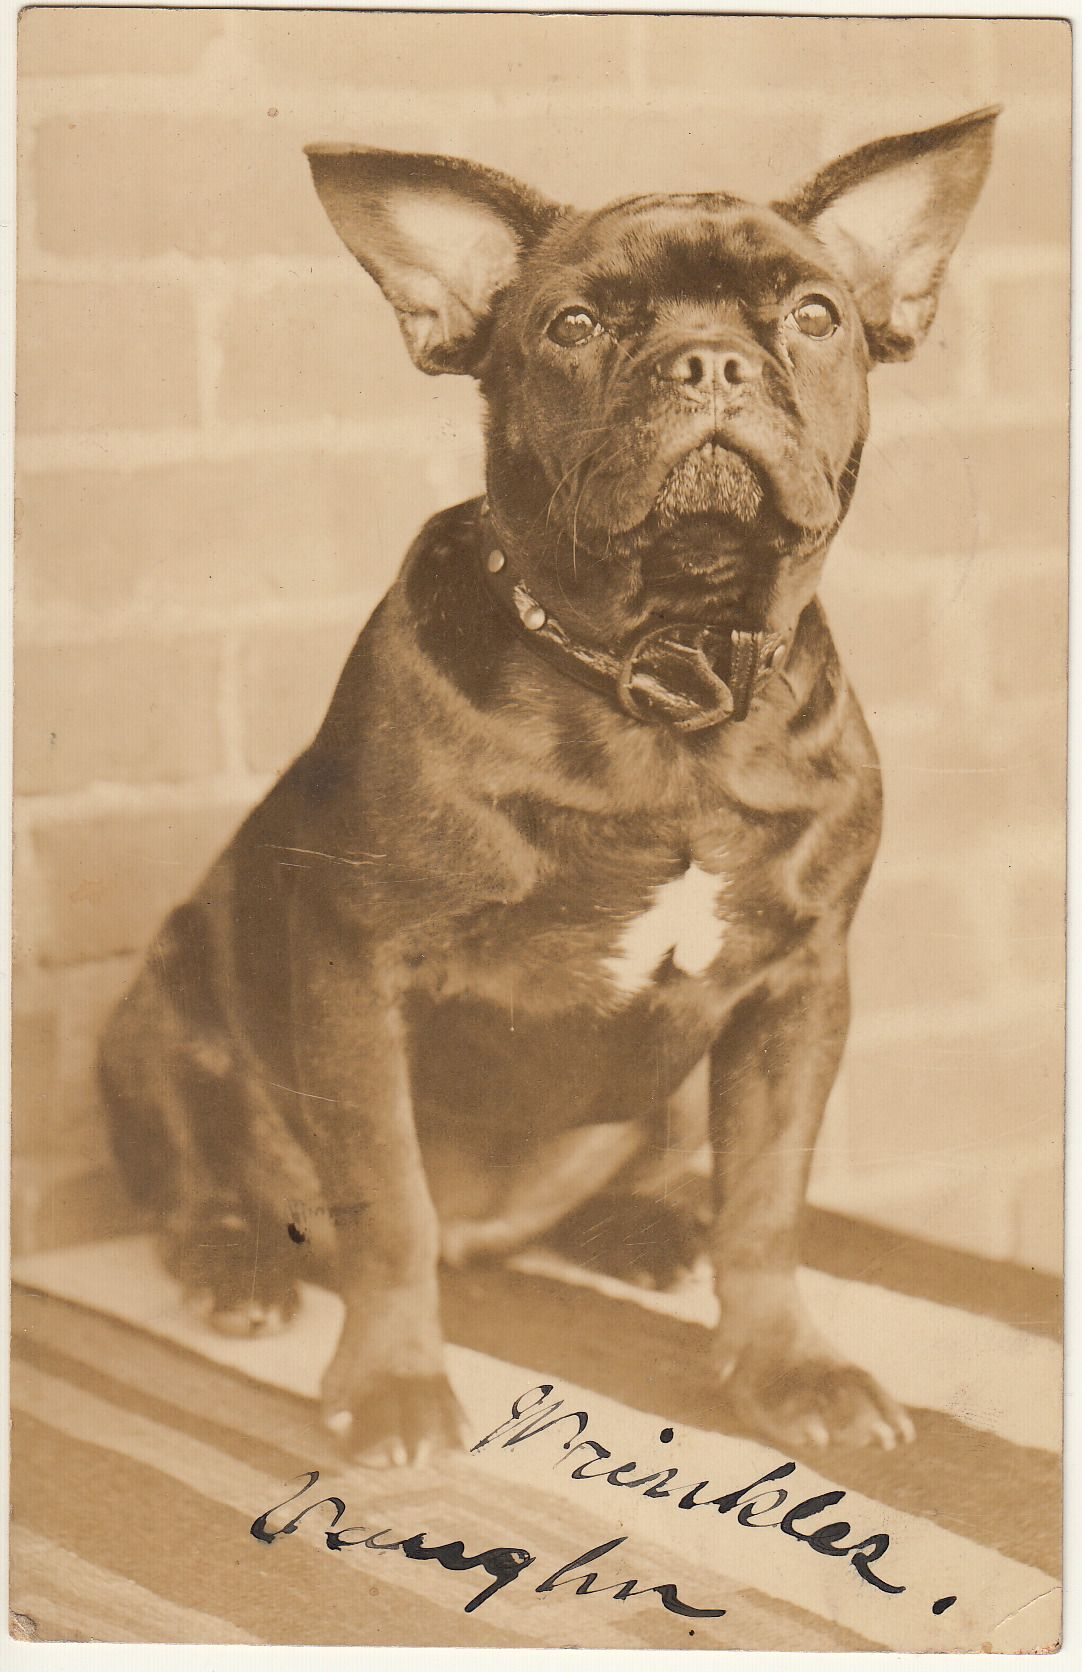 Wrinkles Vaughn New York, about 1910. Bulldog, French